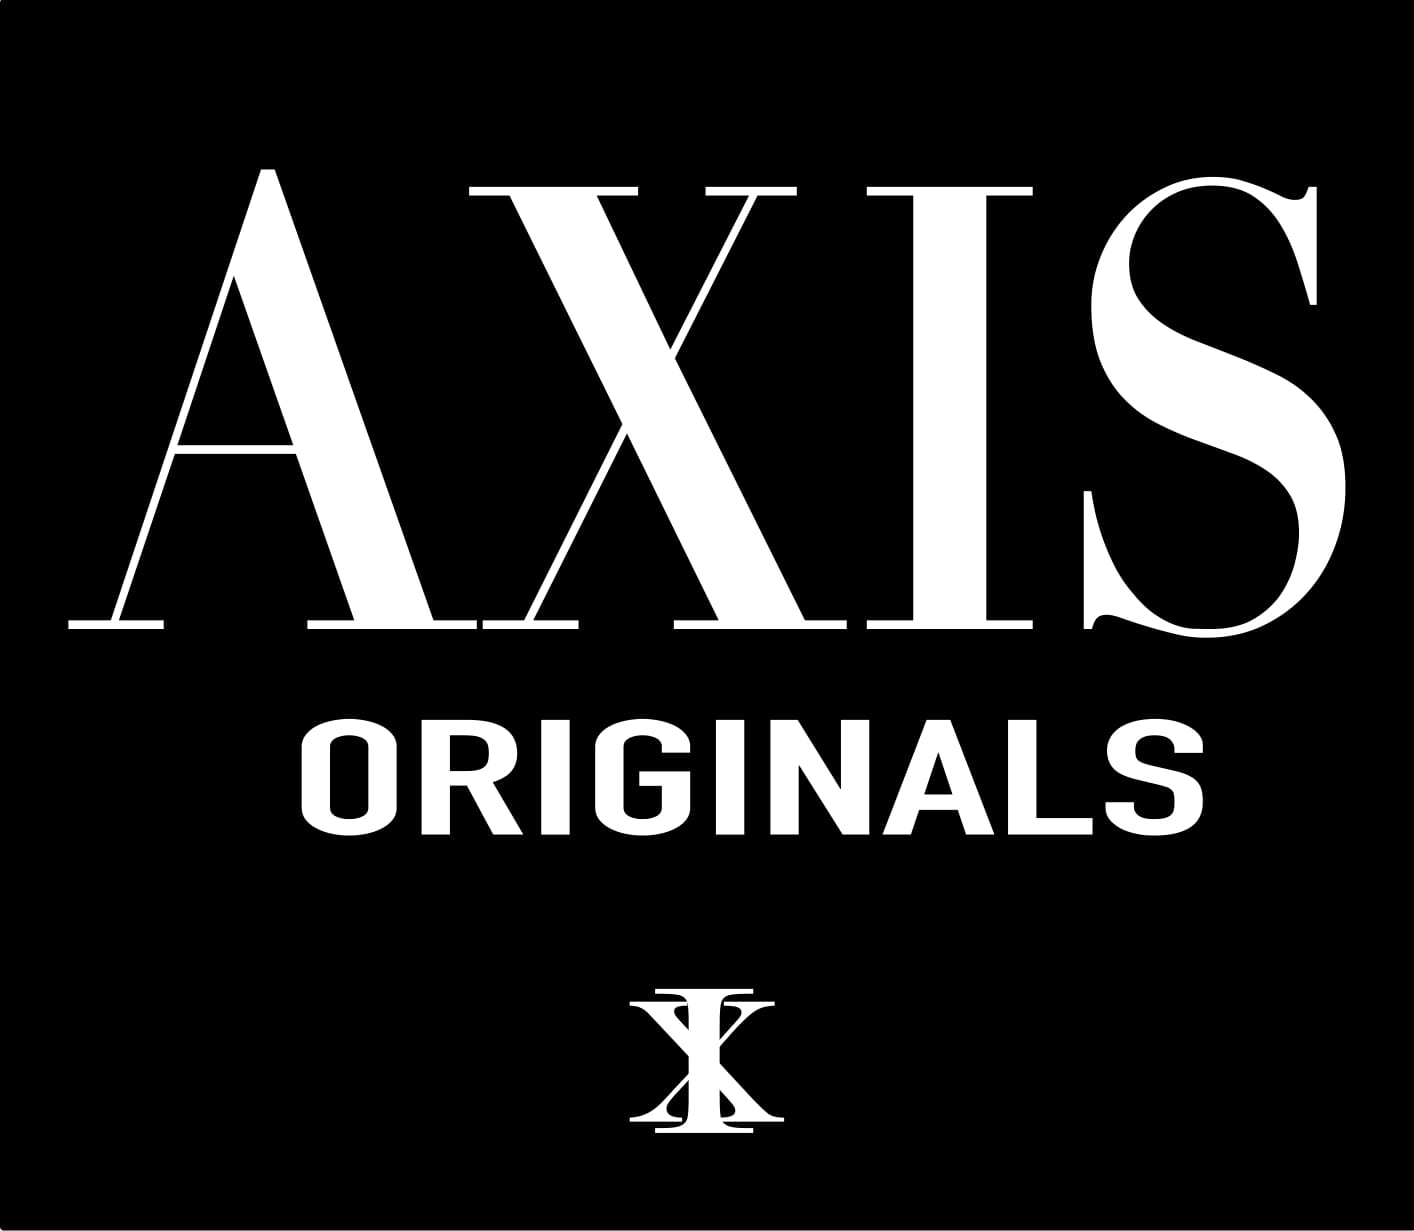 AxisOriginals-1.jpg